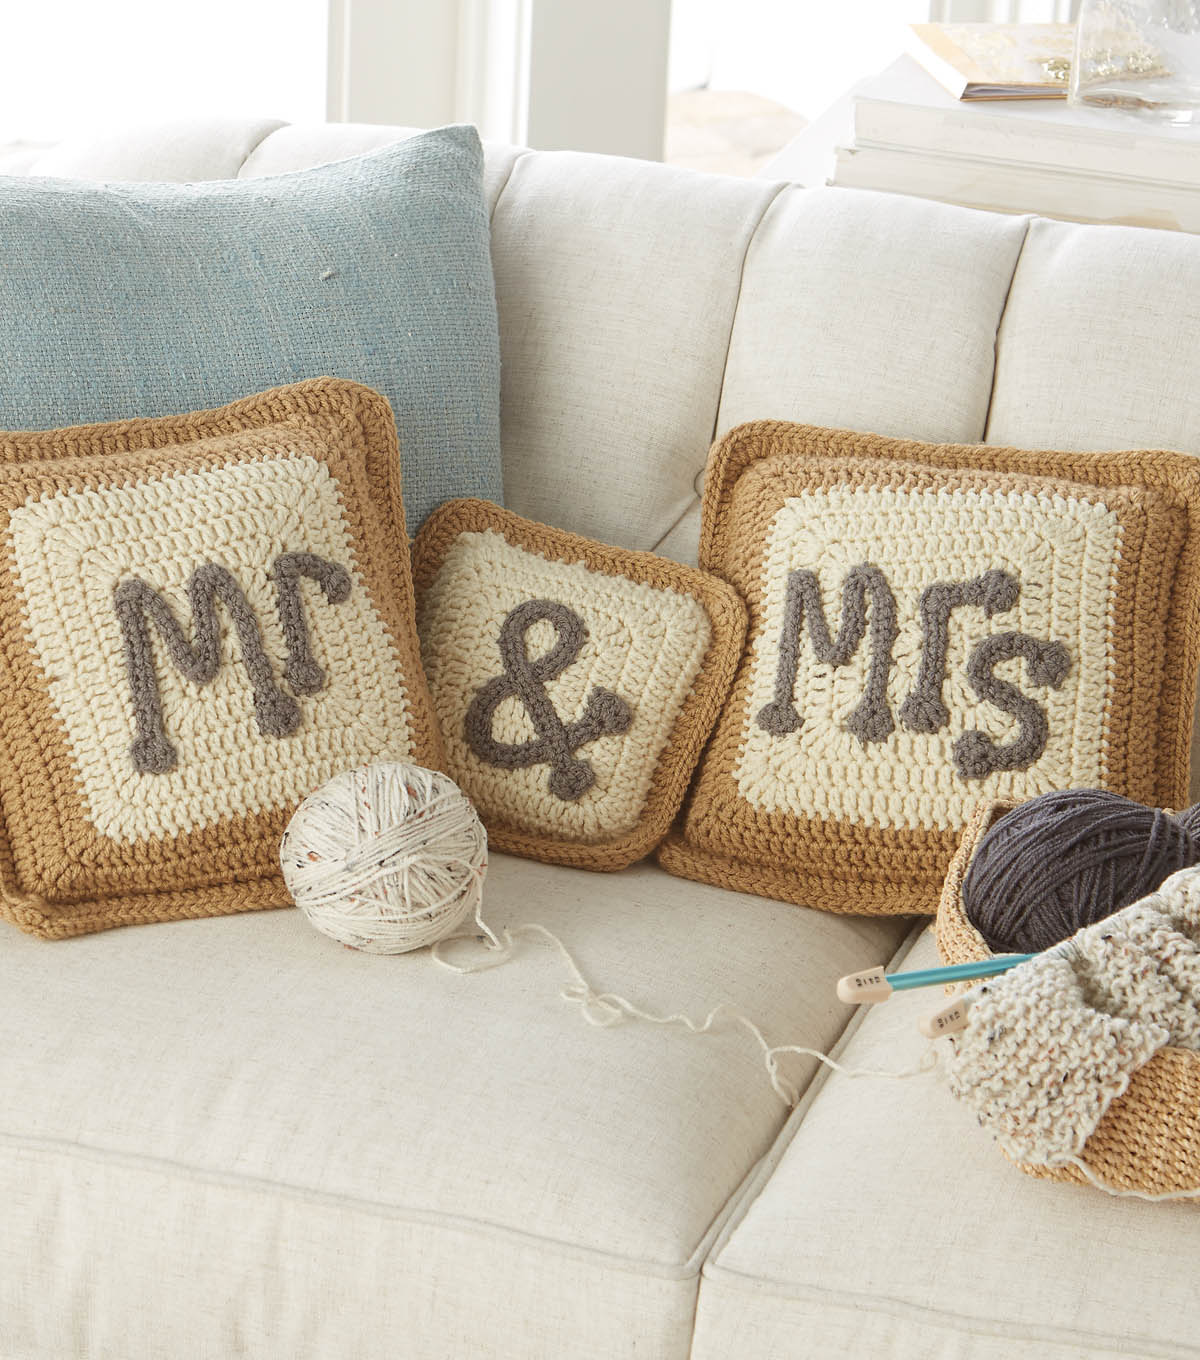 Image of: Mr and Mrs Pillows Cover Fabric